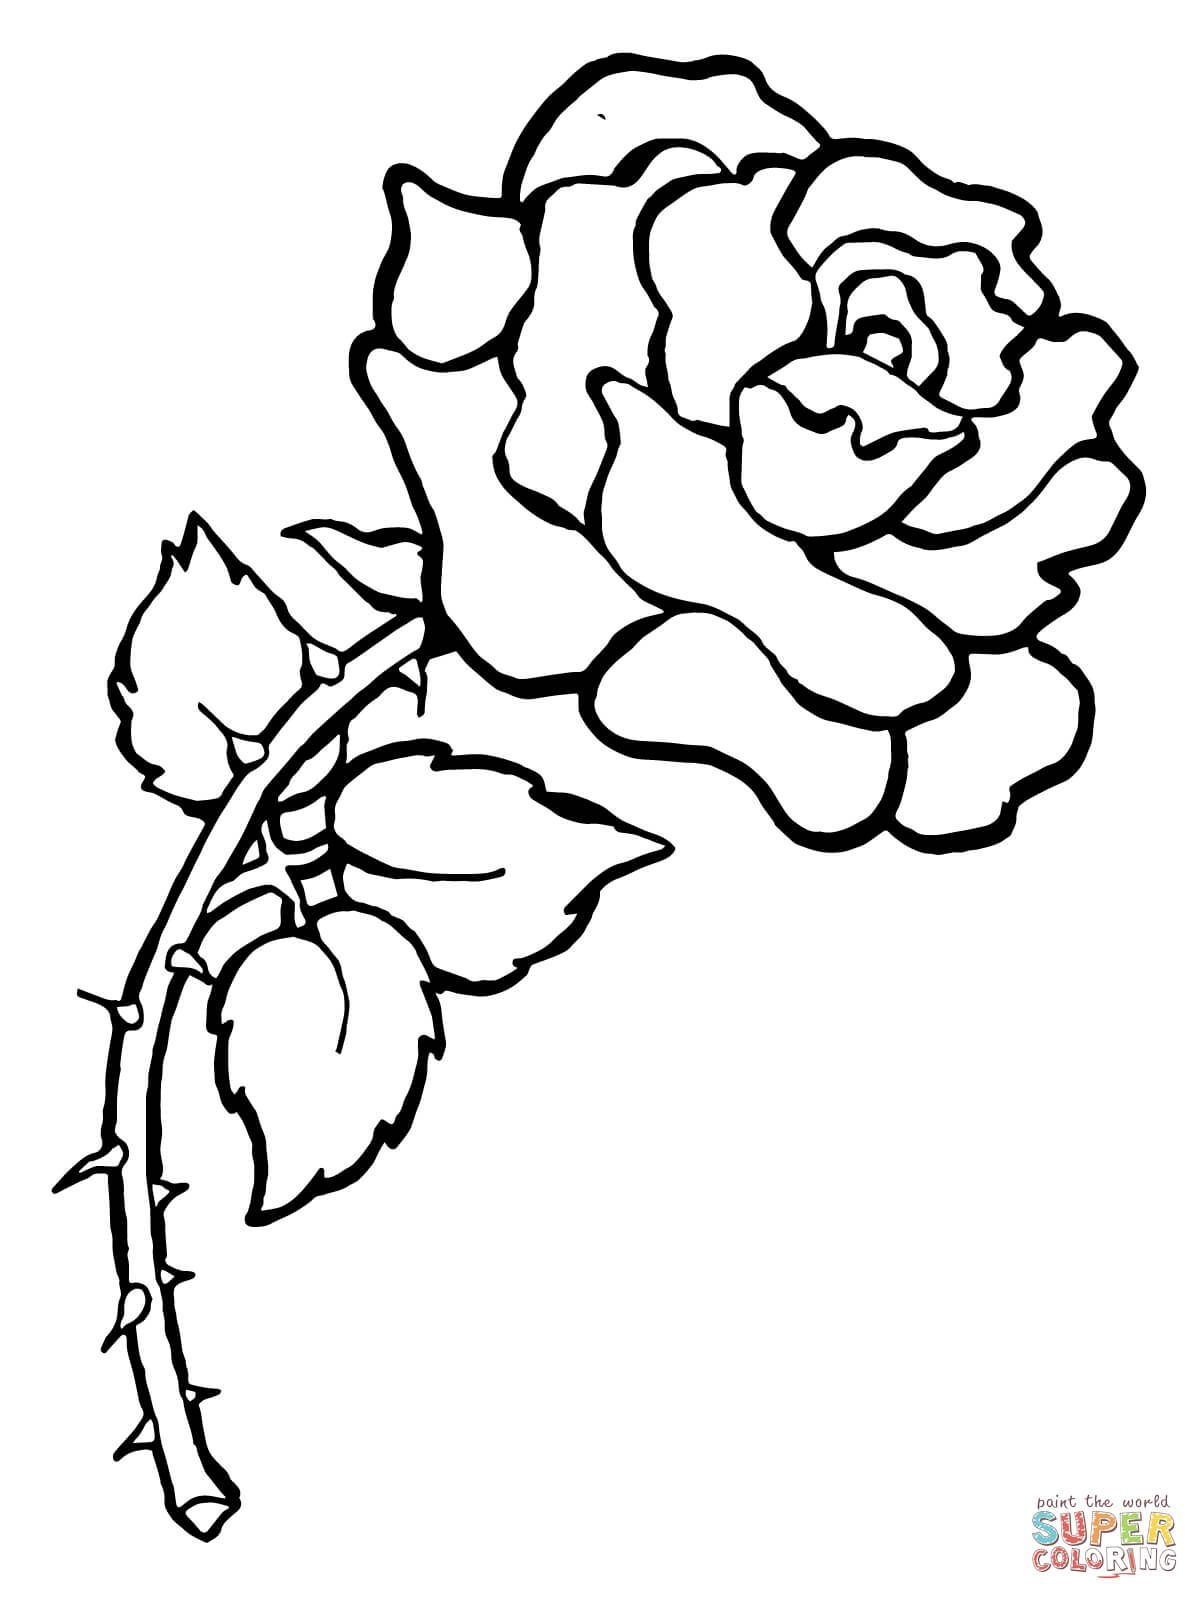 Print Roses Coloring Pages Free Coloring Pages Rose Coloring Pages Printable Flower Coloring Pages Sunflower Coloring Pages